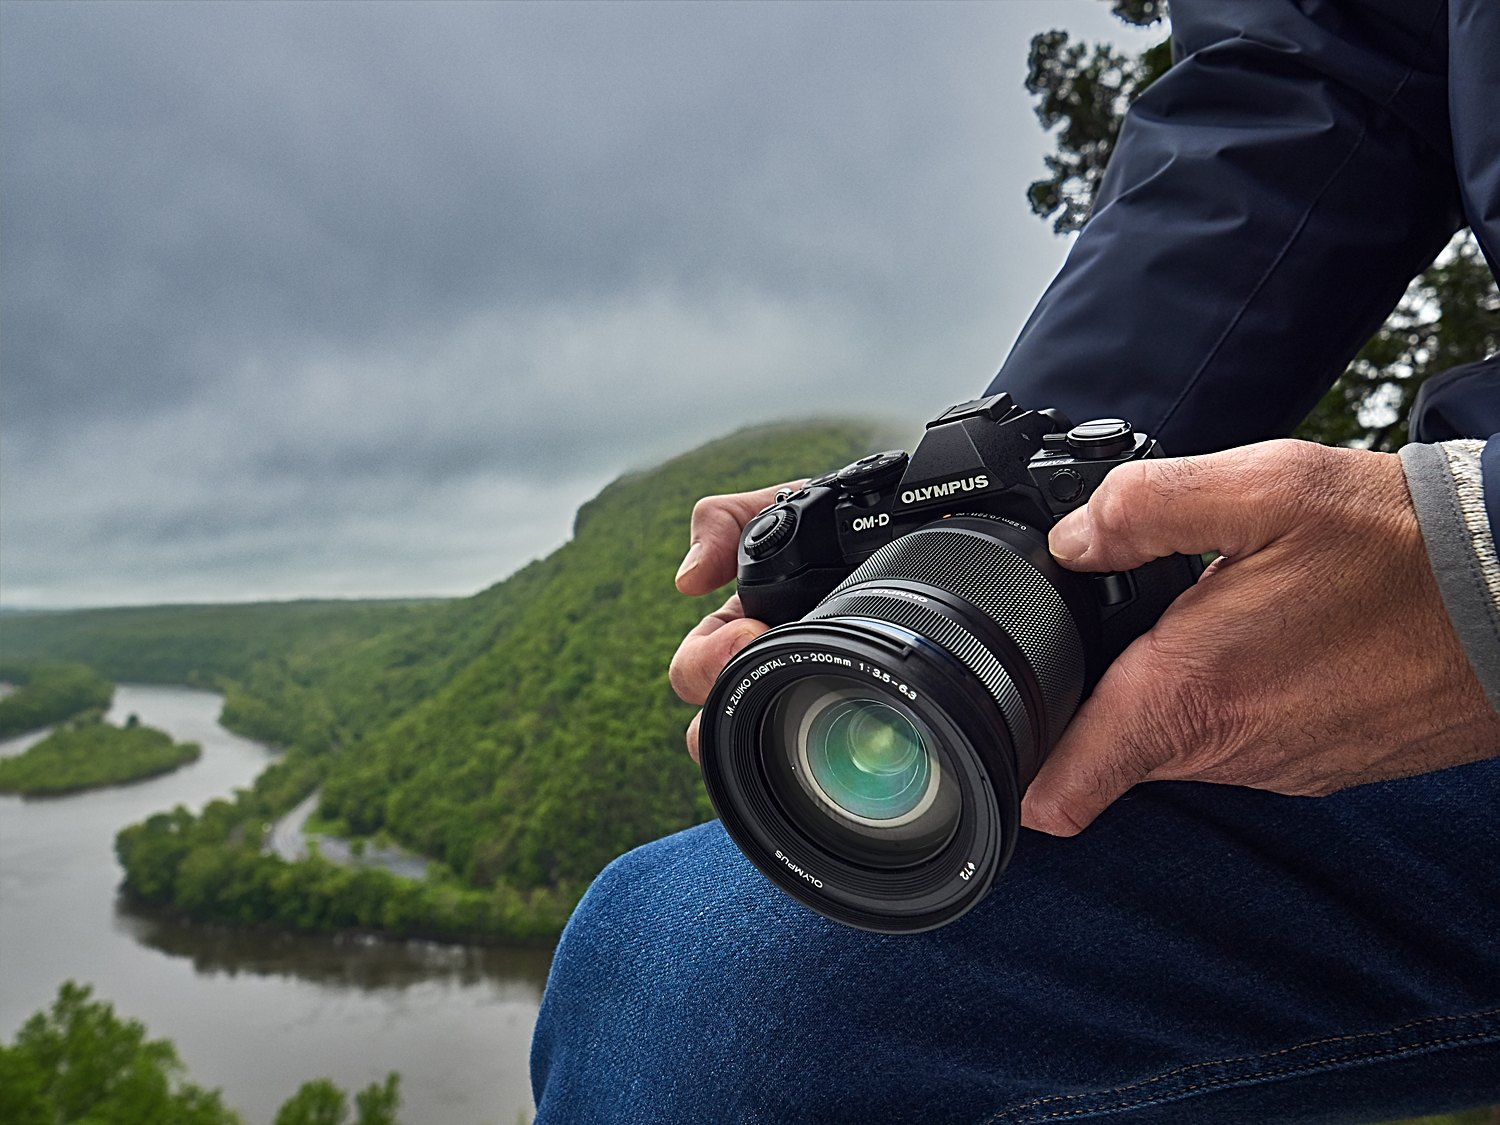 Person holding an Olympus mirrorless camera.